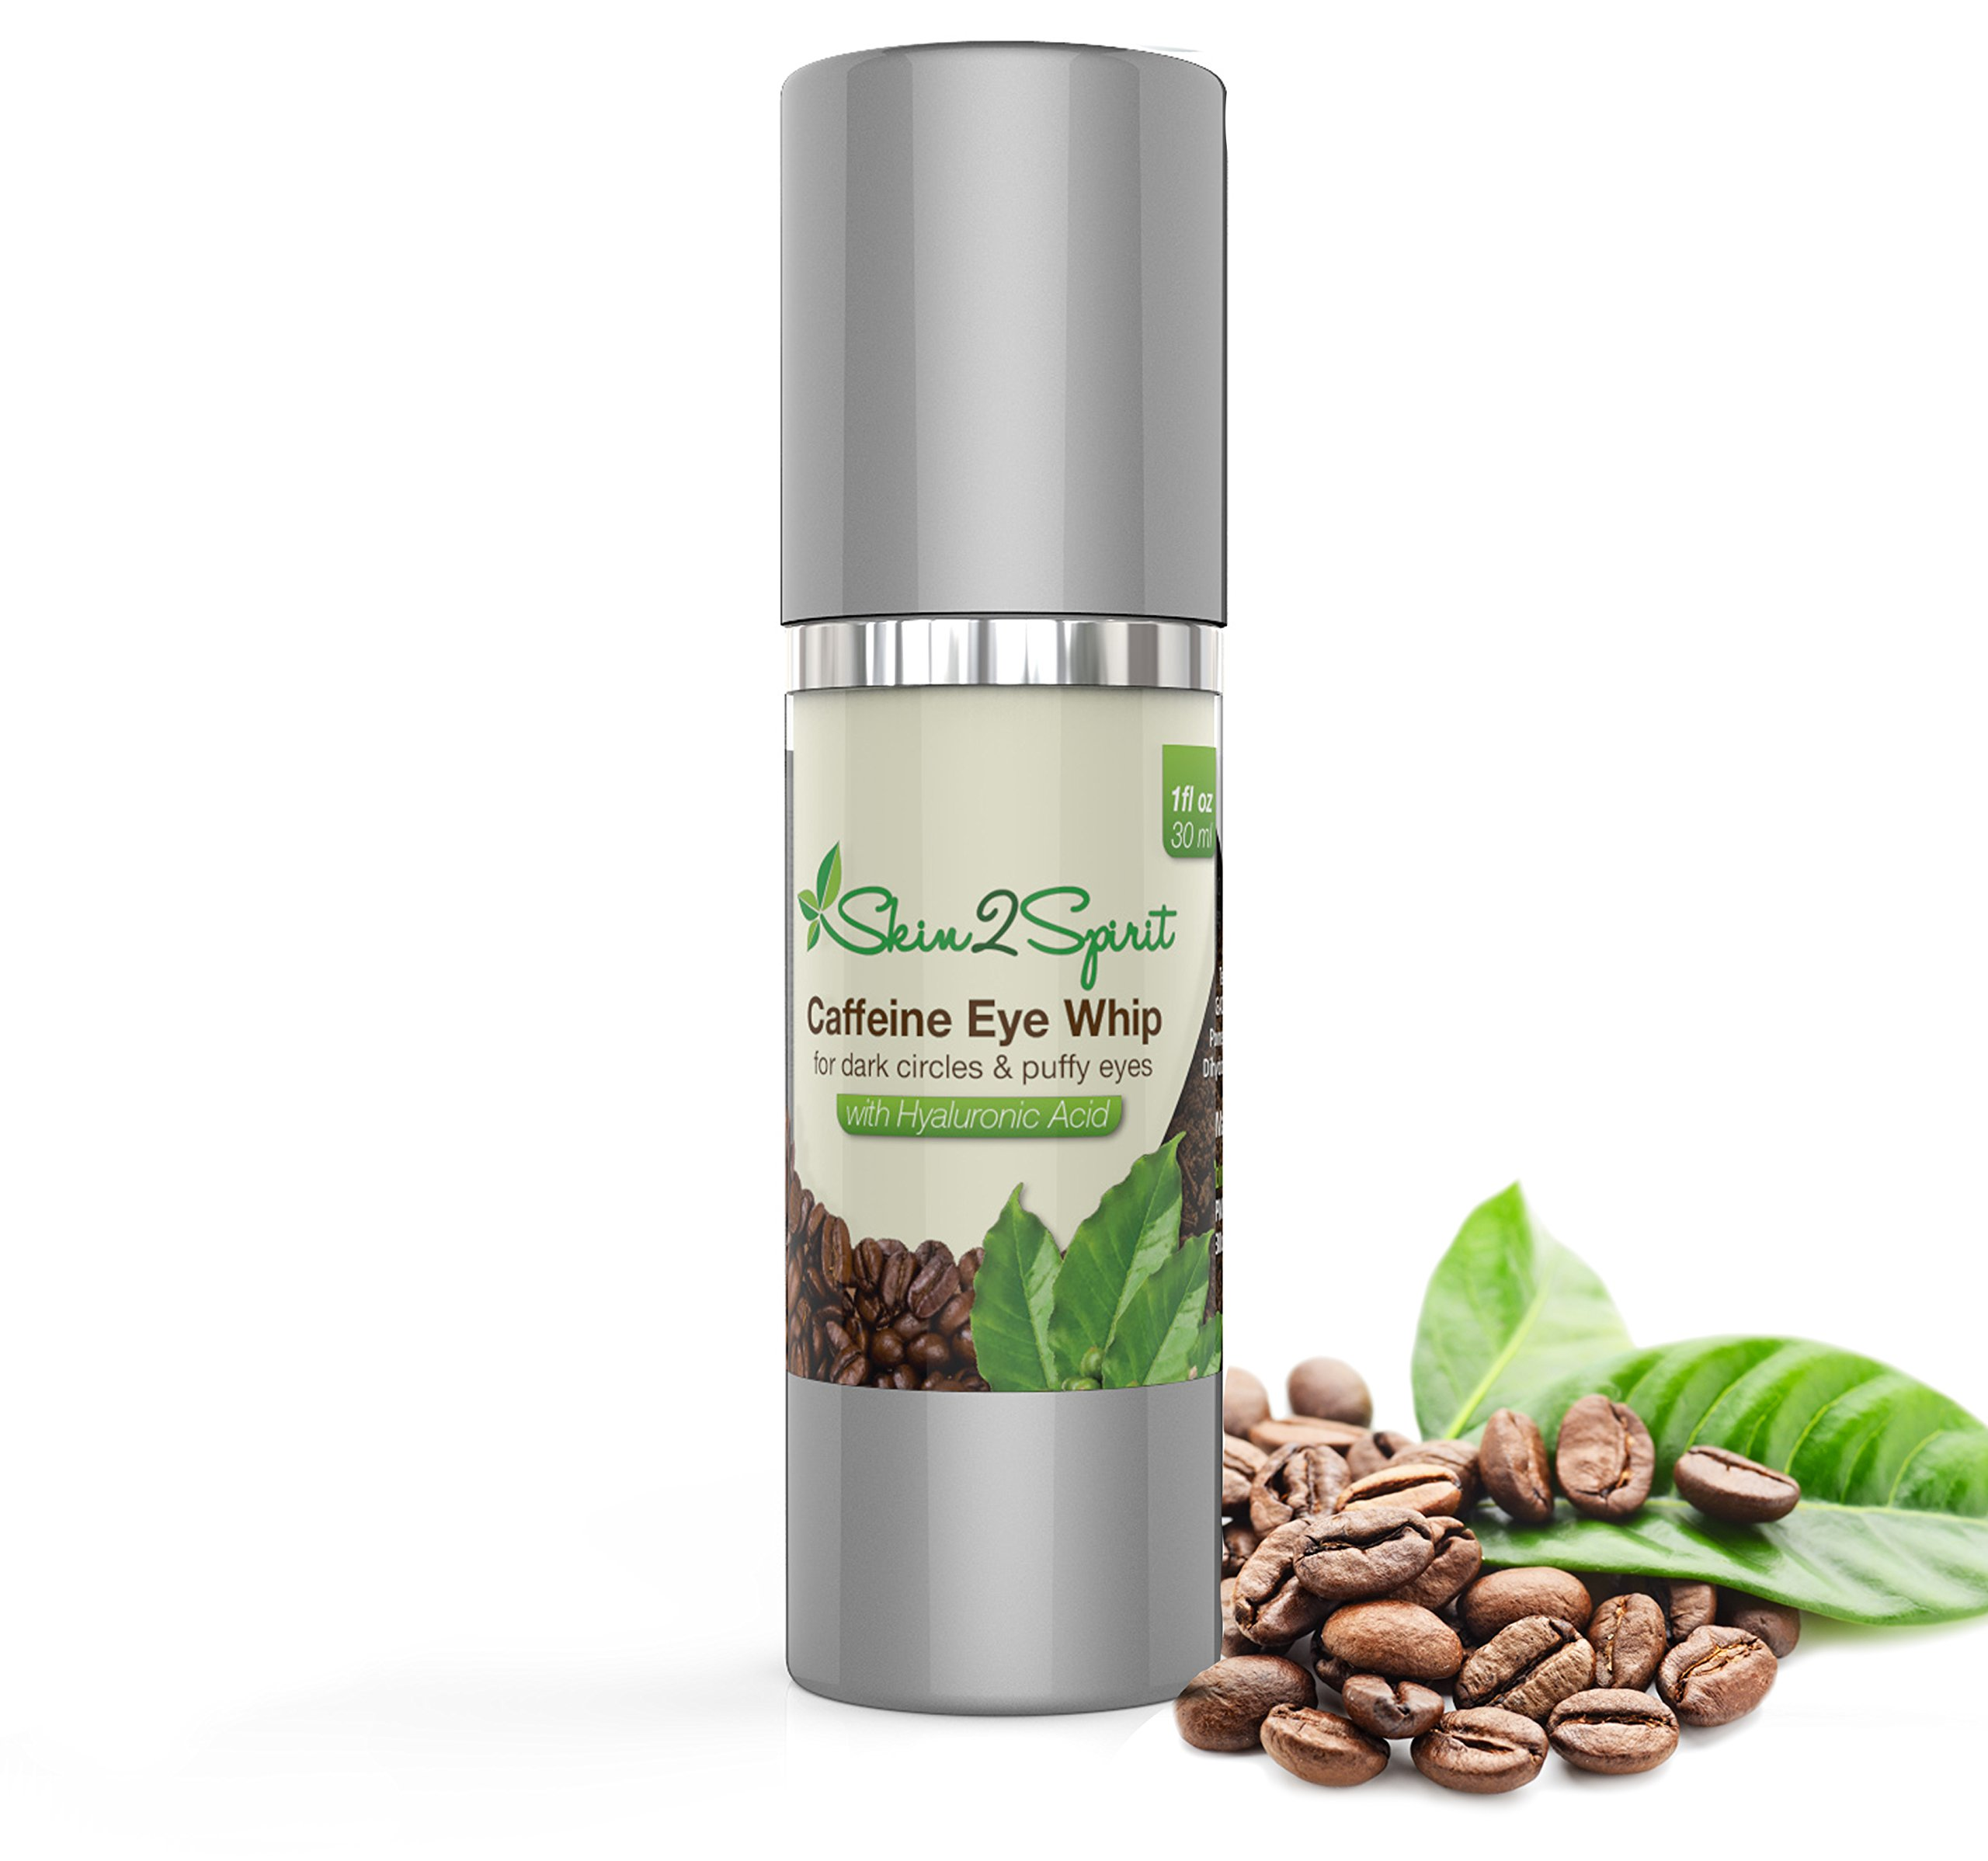 Age Defying Caffeine Eye Cream | 1 OZ | Puffy Eyes, Dark Circles, Fine Lines, Wrinkles | All Natural and Organic Ingredients: Contains Hyaluronic Acid | Cruelty Free | Made in USA! by Skin2Spirit (Image #1)